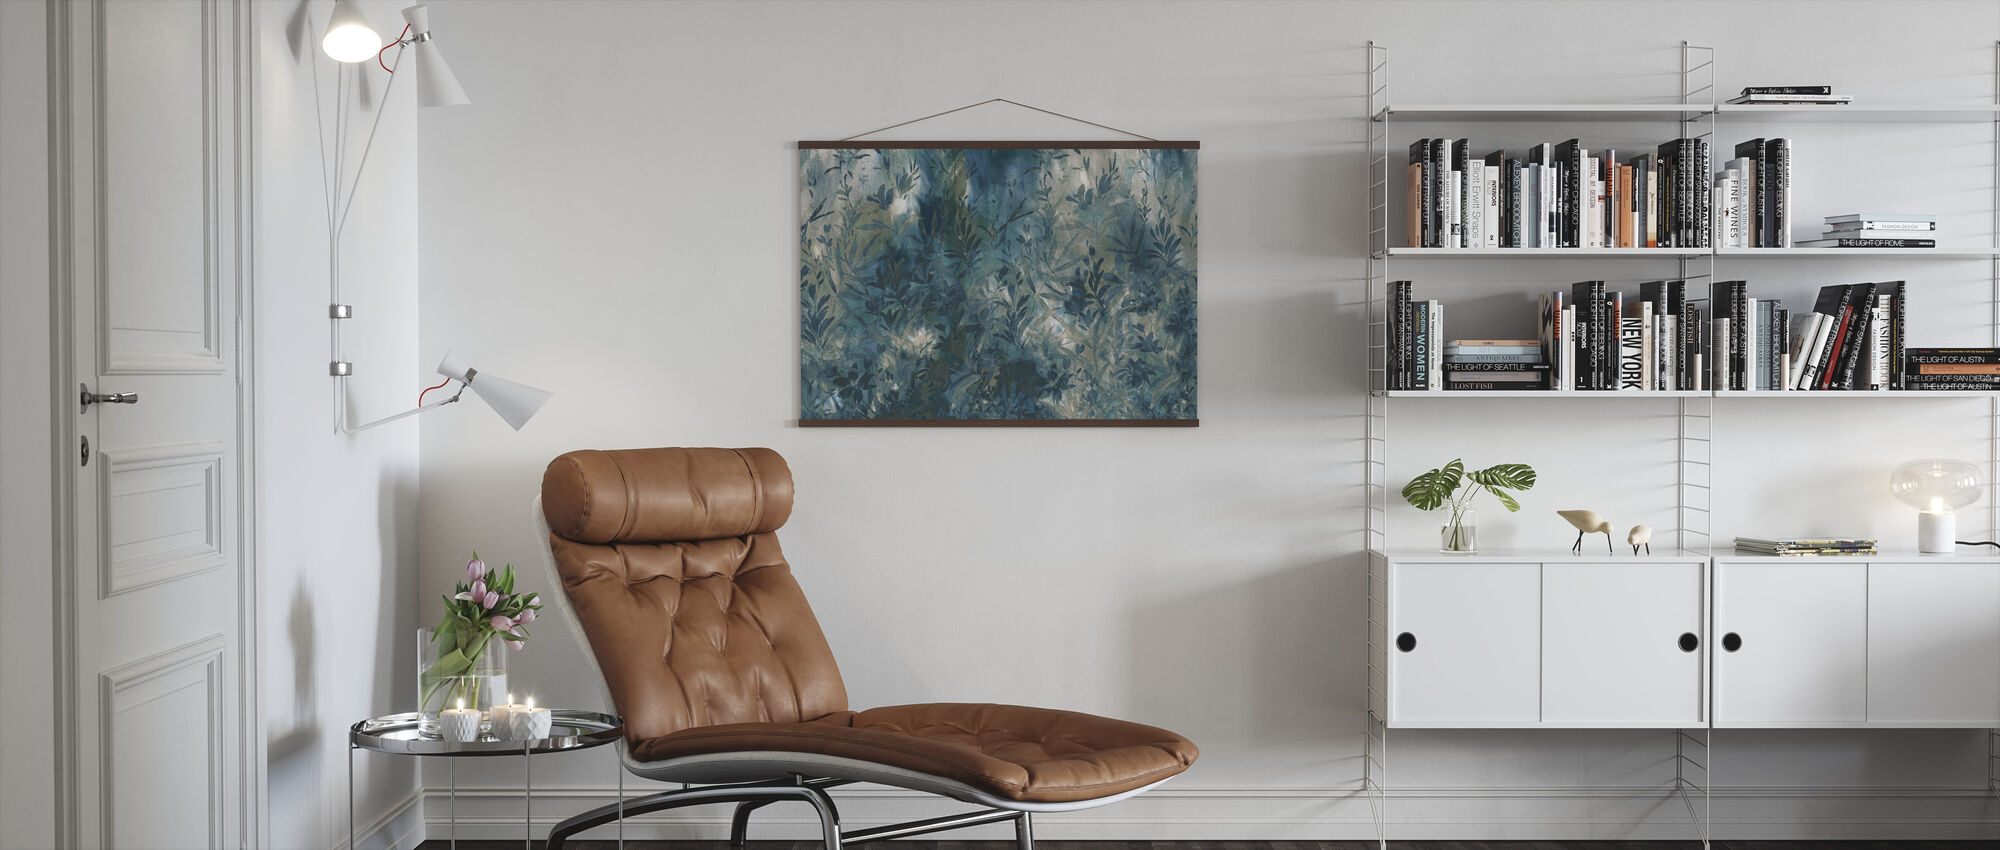 Herbage - Poster - Living Room